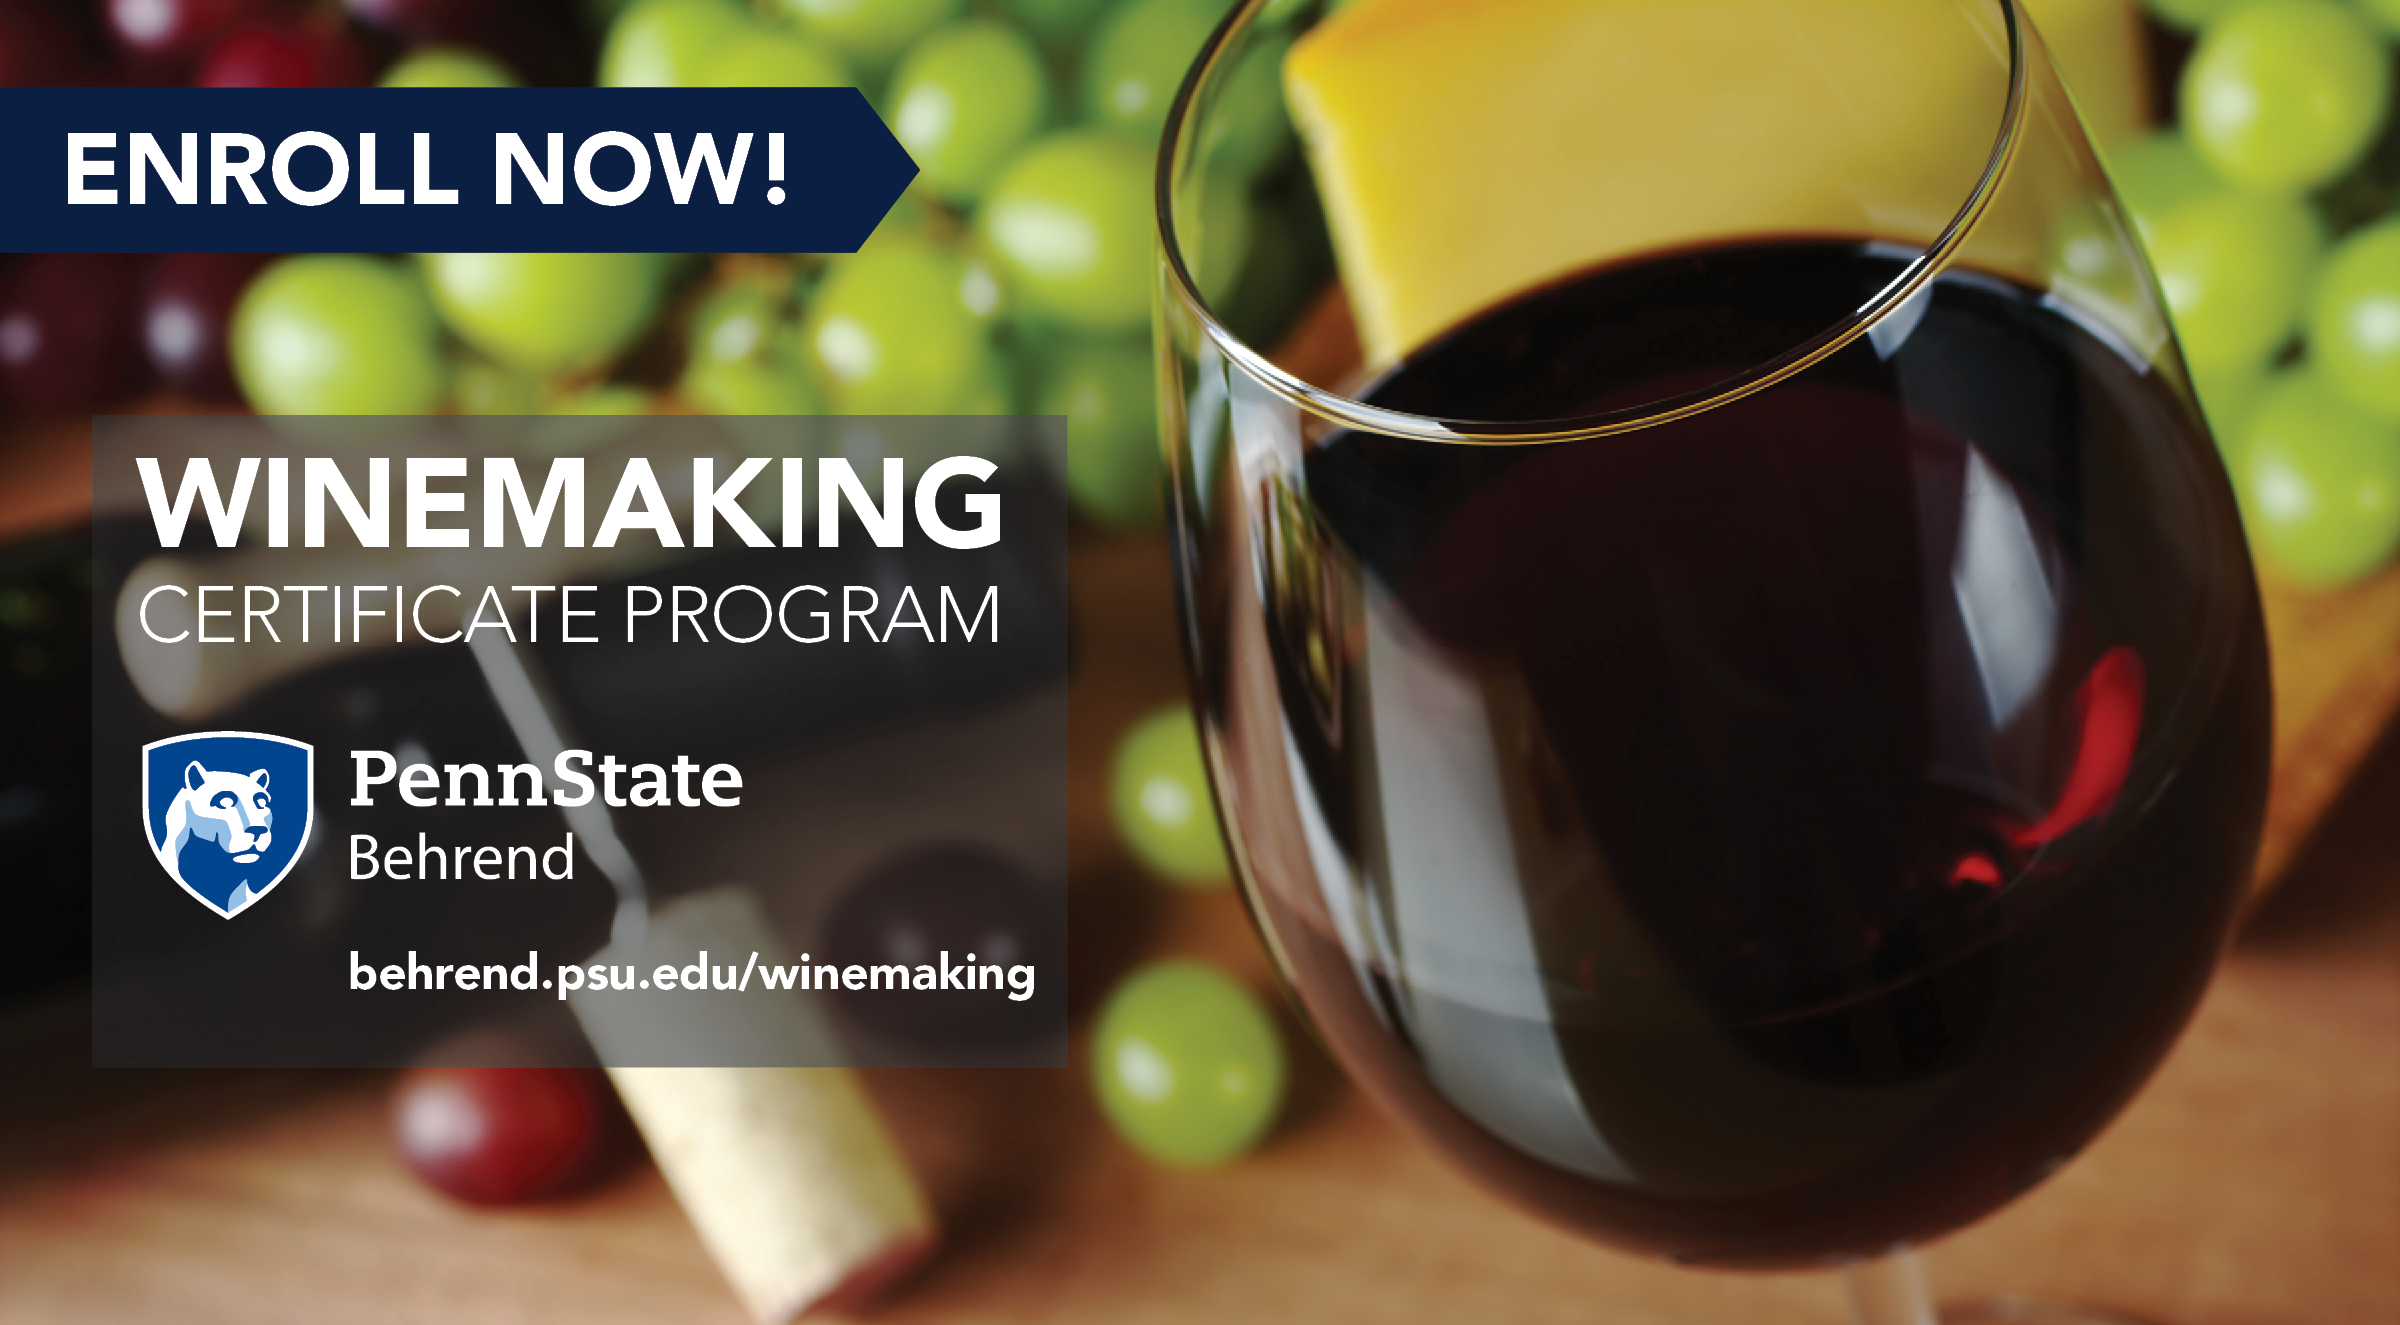 Registration is now open for the Winemaking Certificate Series at Penn State Behrend.